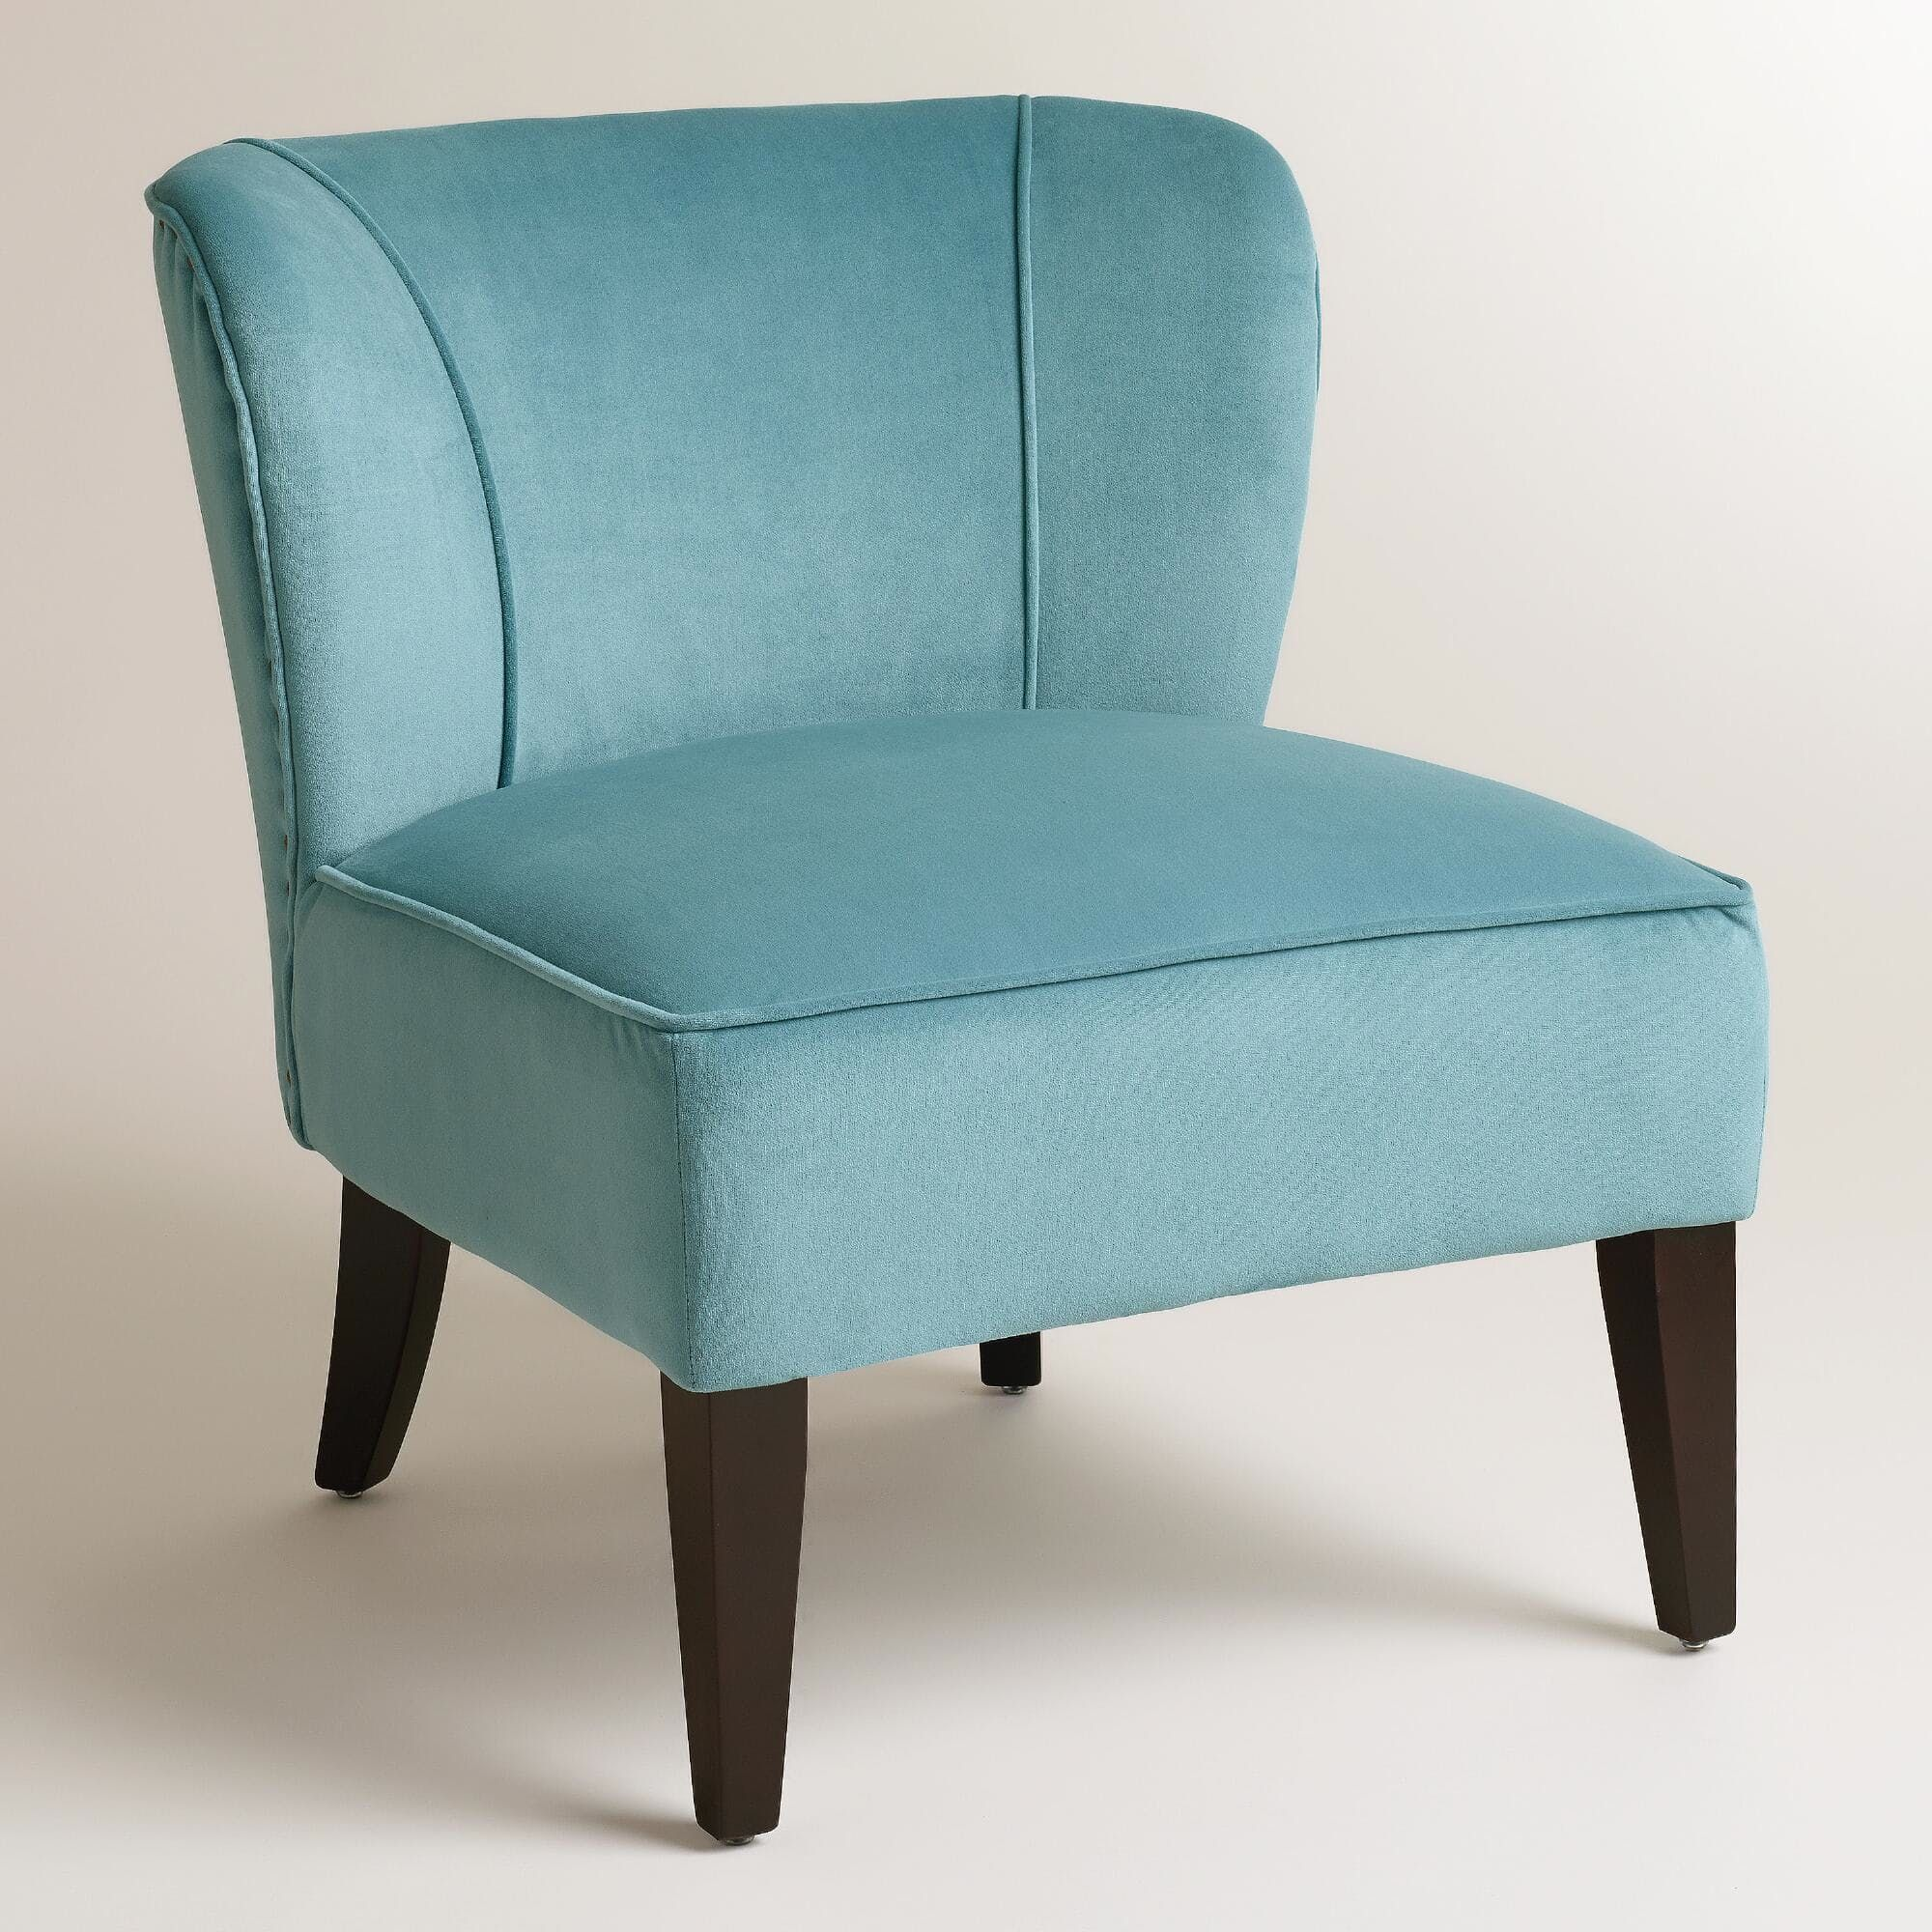 The Best Living Room Accent Chairs Under 200 Accent Chairs For Living Room Living Room Chairs Upholstered Chairs